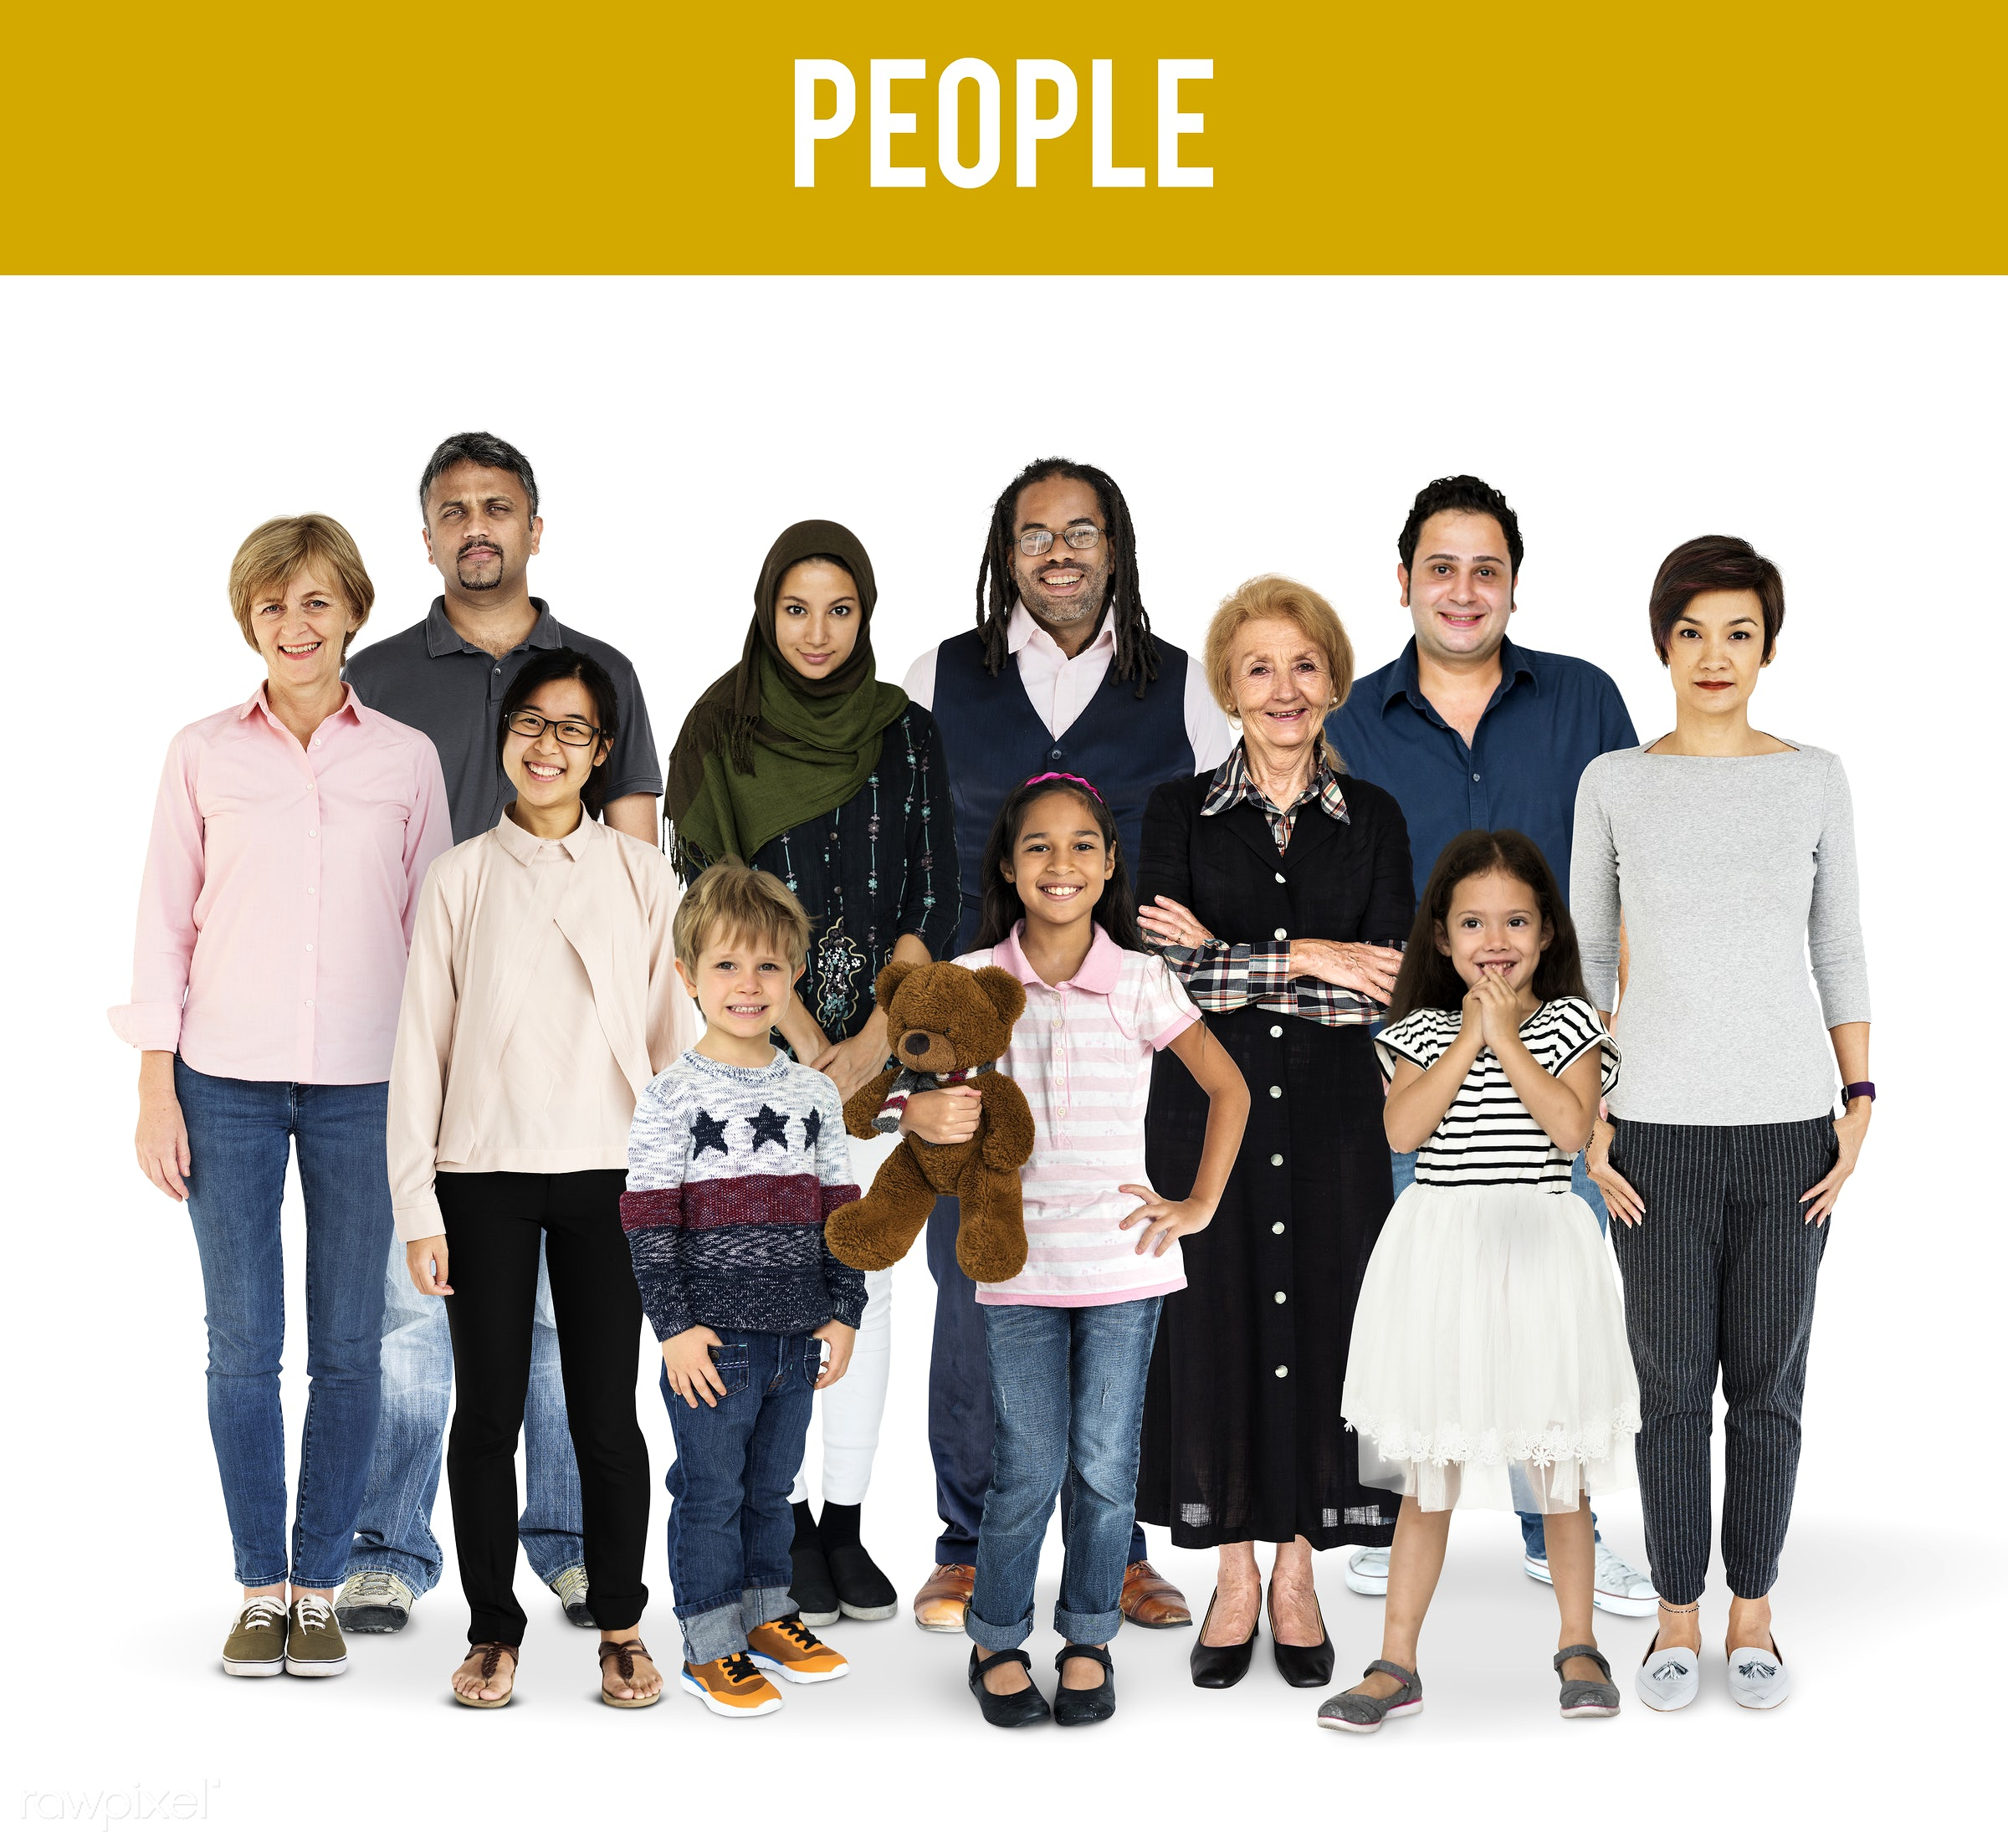 Diverse people set - studio, person, diverse, people, together, kid, retirement, young adult, woman, lifestyle, smile, baby...